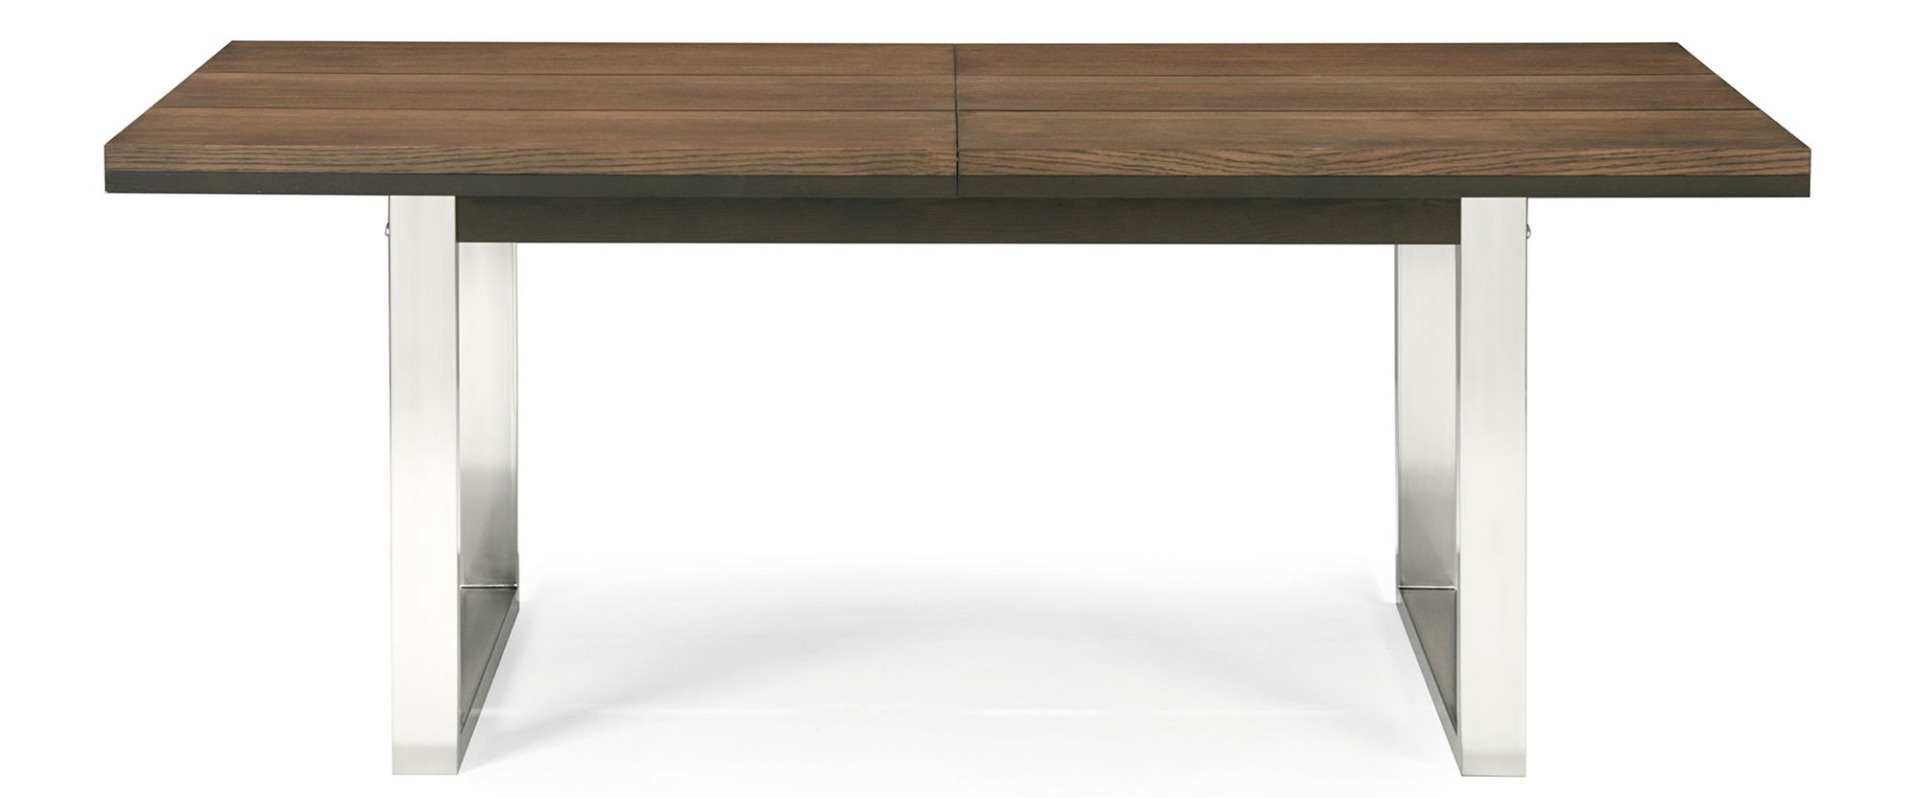 Famous Tivoli 6 10 Seat Extension Dining Table Inside Extension Dining Tables (Gallery 21 of 30)